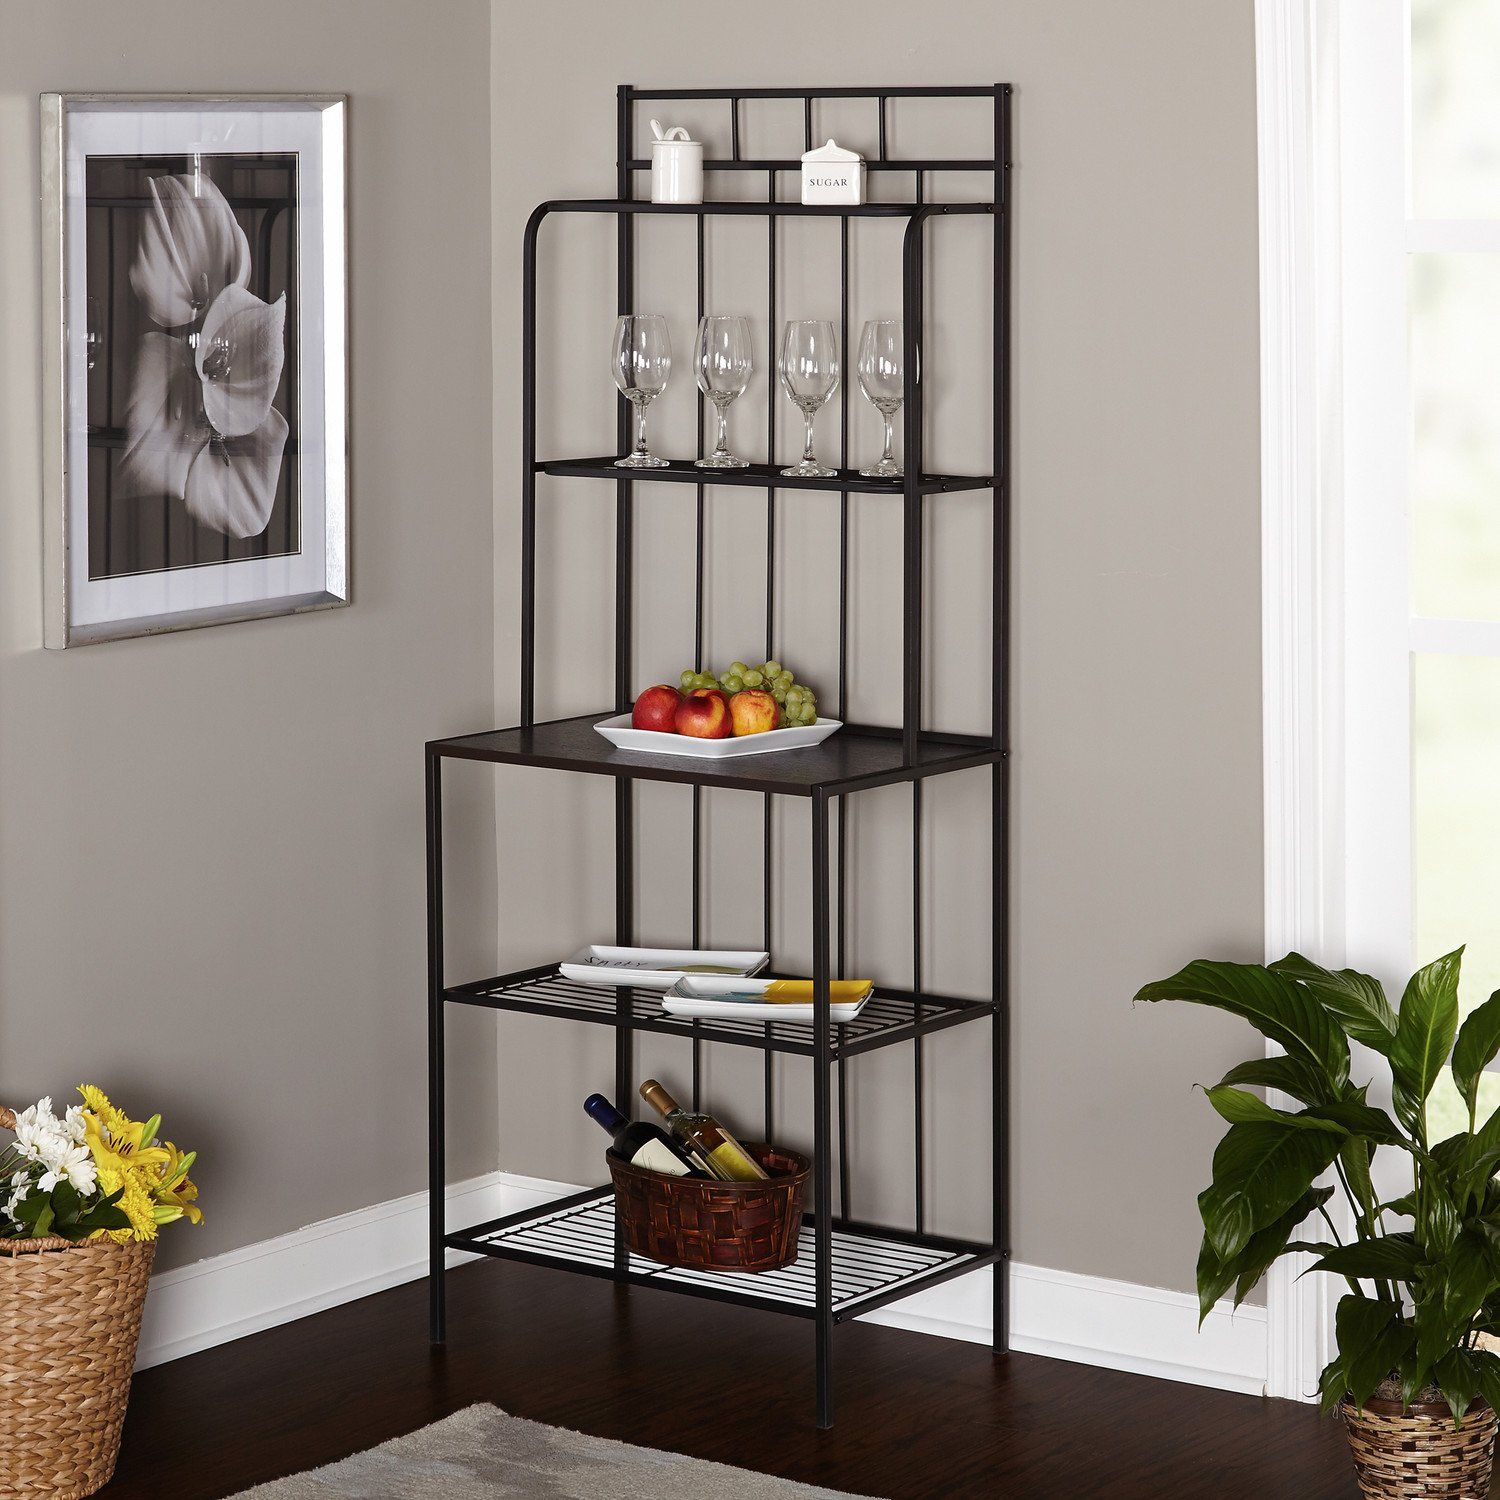 baker kitchen rack baskets a decor by provide for driven our s woven storage bakers